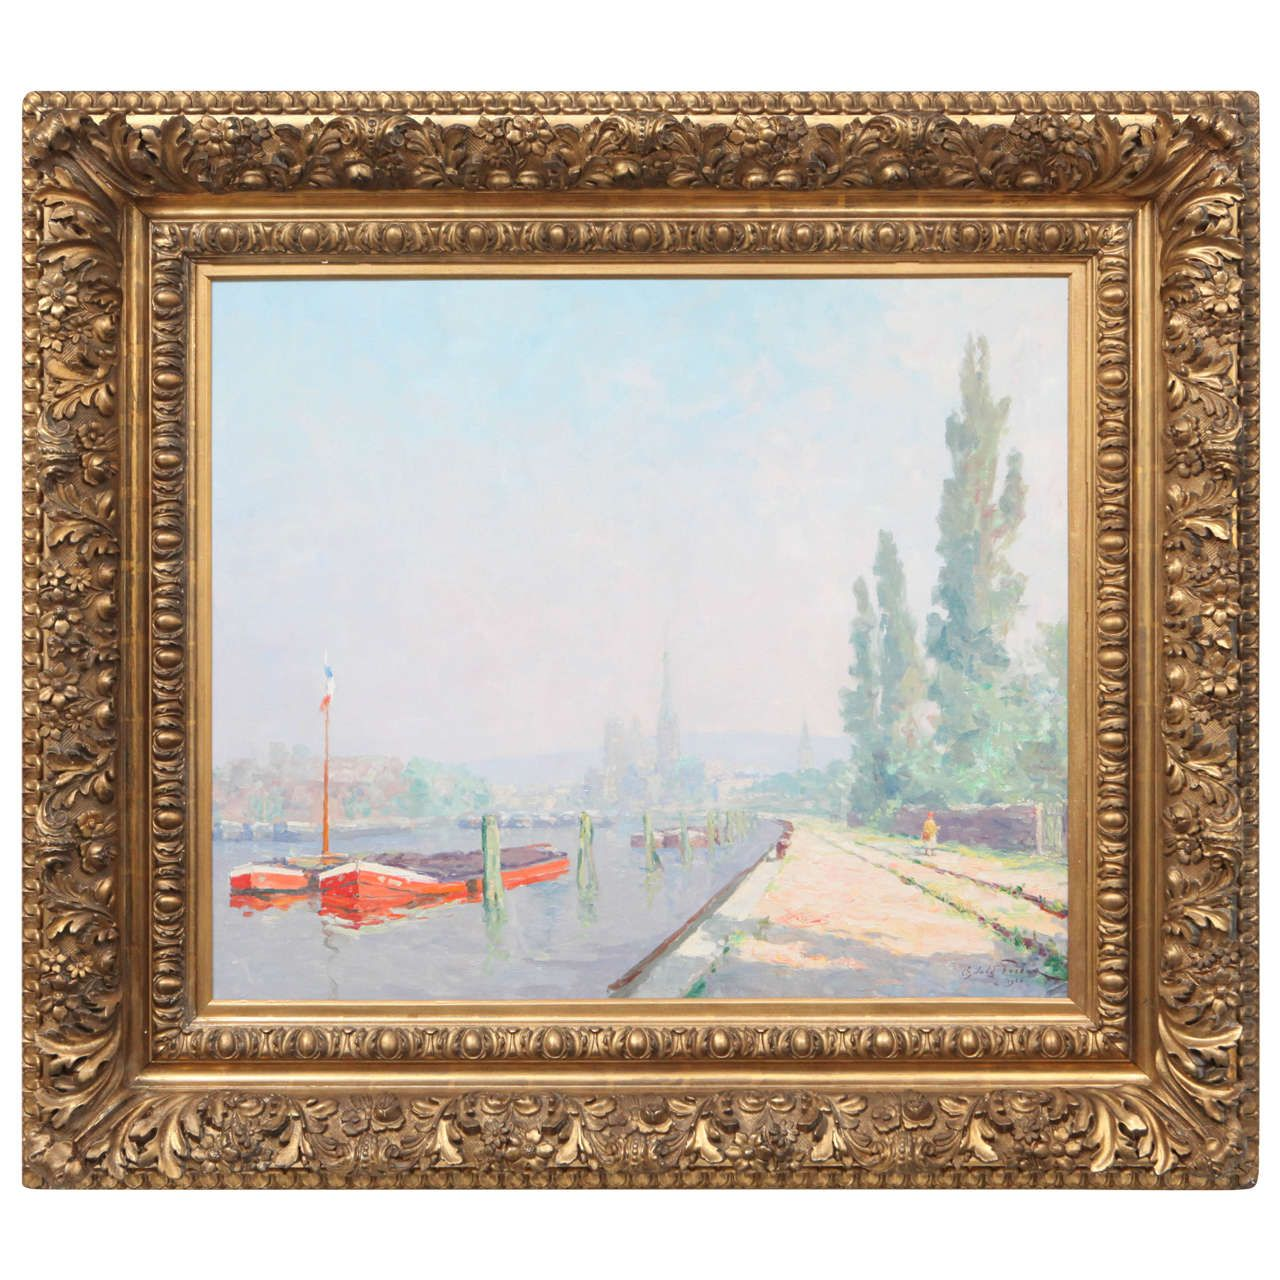 1926 Oswald Pombeau Oil Painting - http://bit.ly/1MdBC60